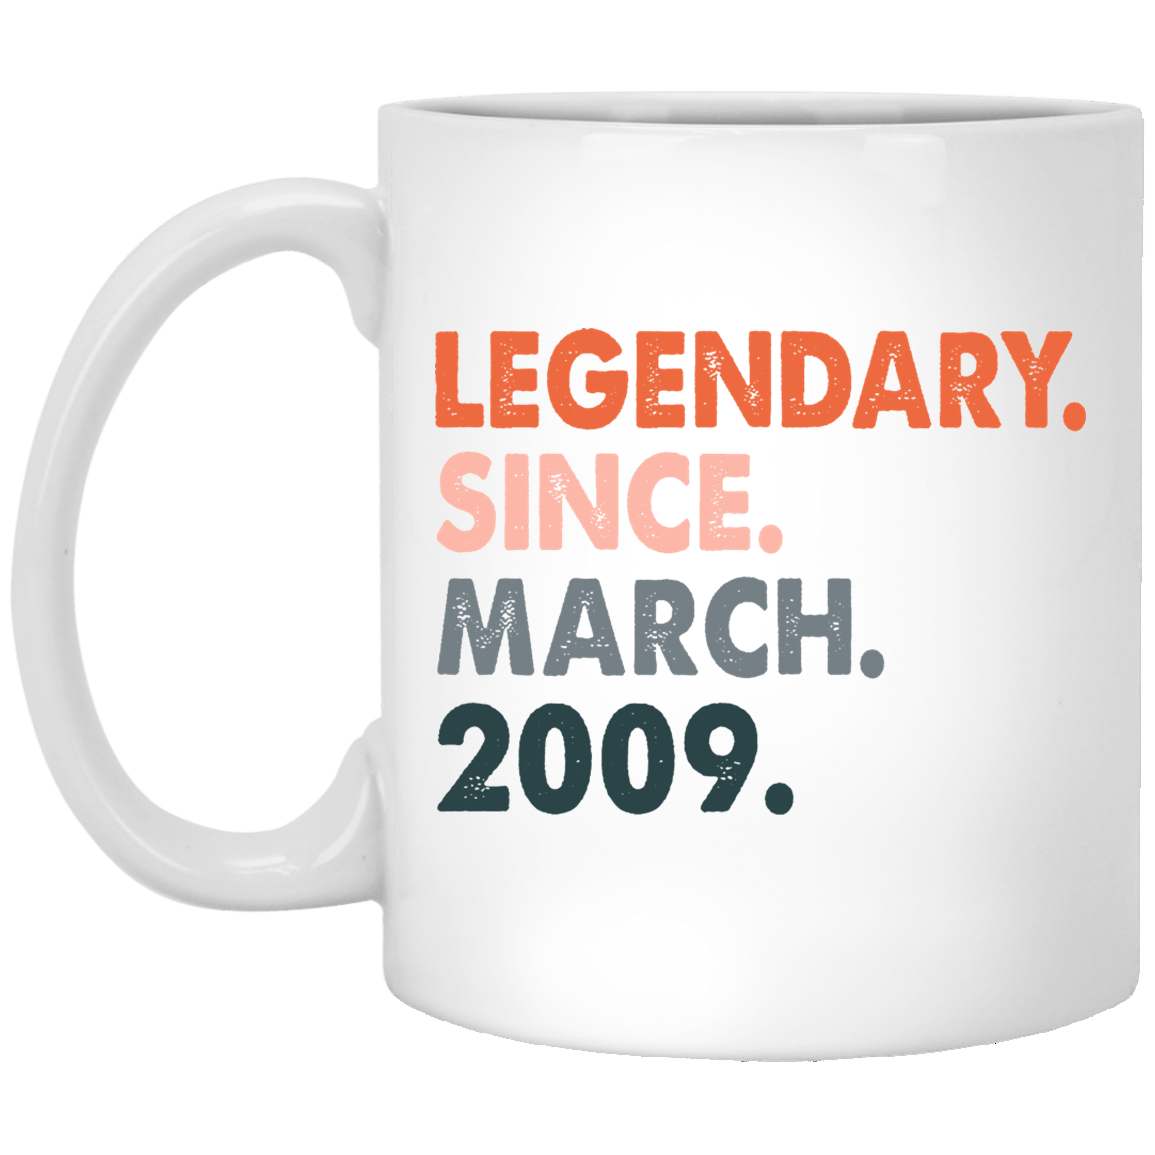 12th-Birthday-Ideas-for-Women-and-Men-Legendary-Since-March-2009 Funny Quotes Coffee Mug 99promocode